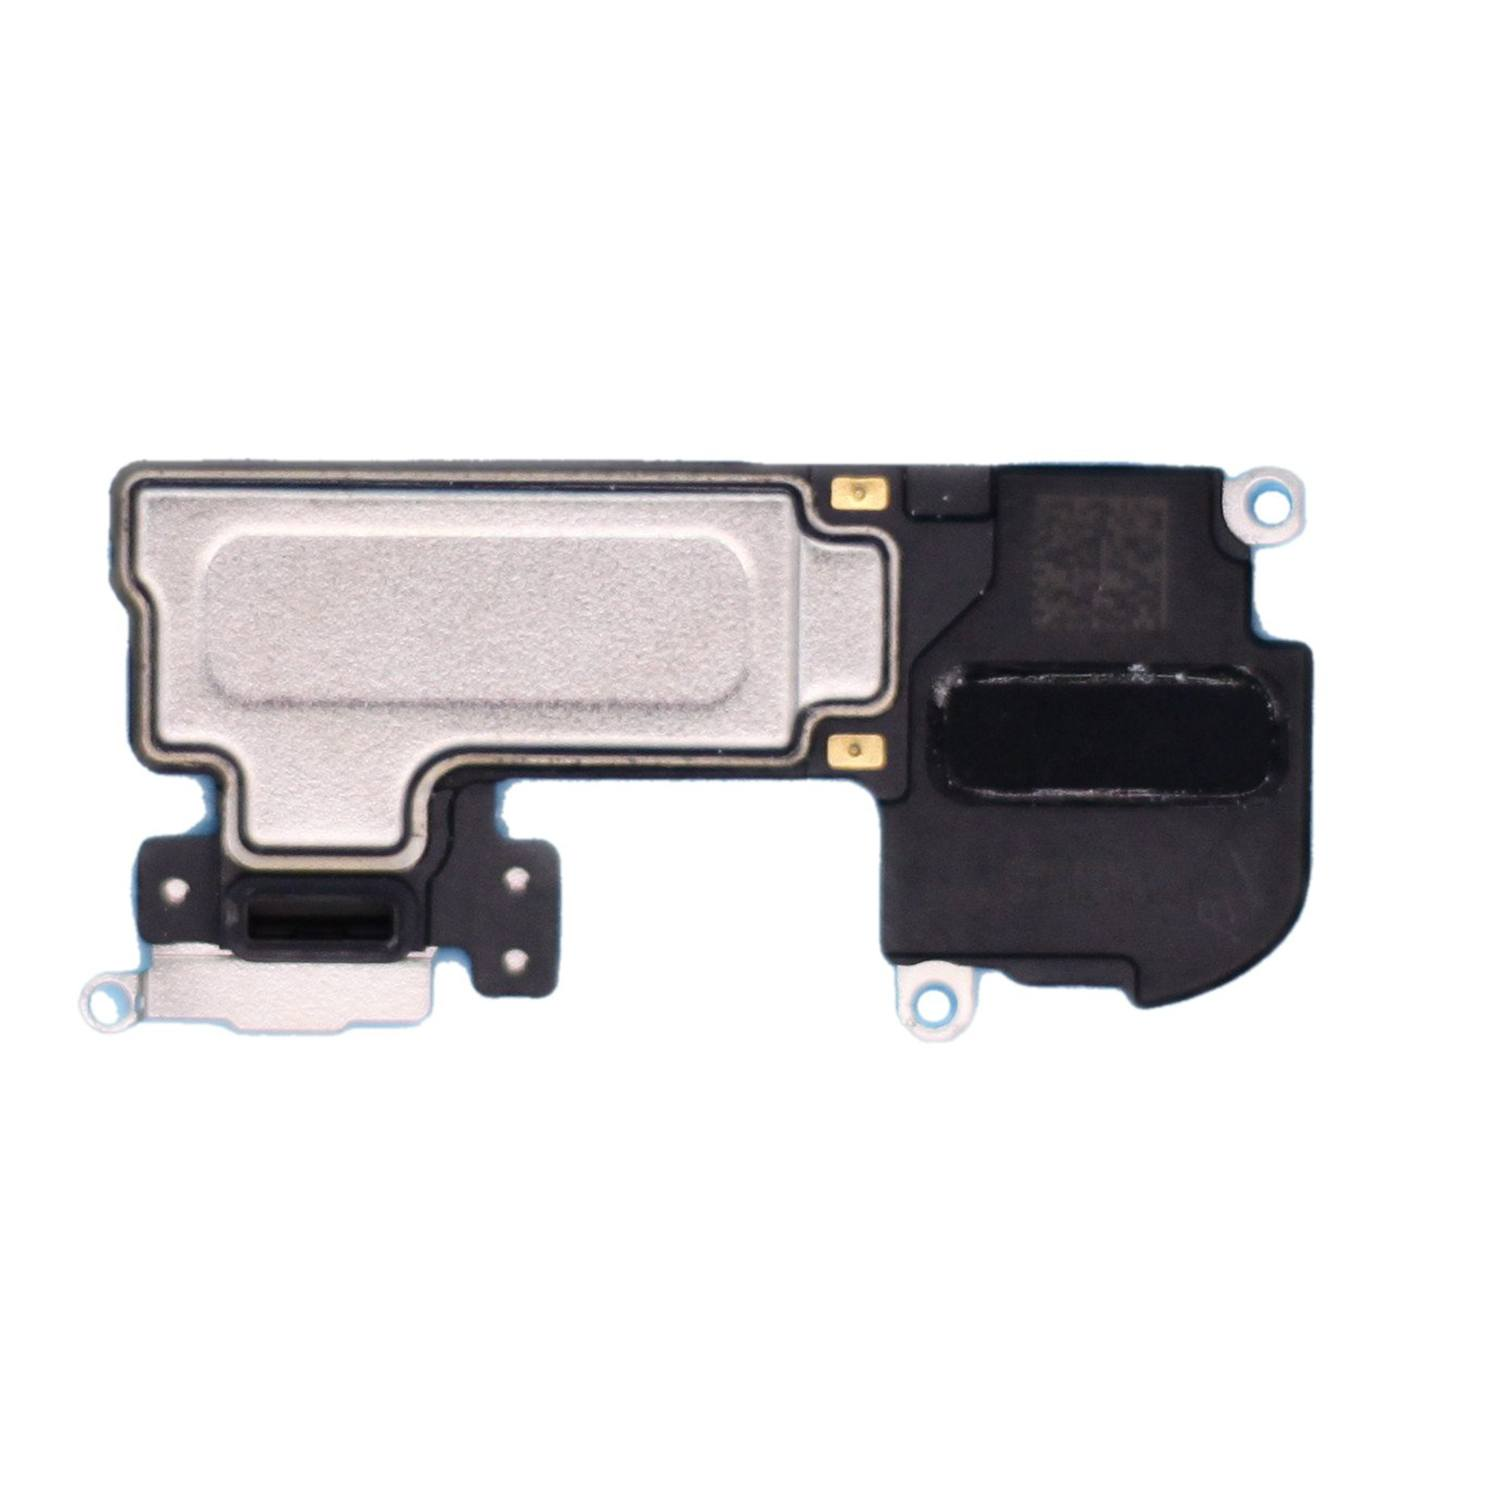 Ear Piece Speaker replacement for iPhone X A1865 A1901 A1902 Pic1